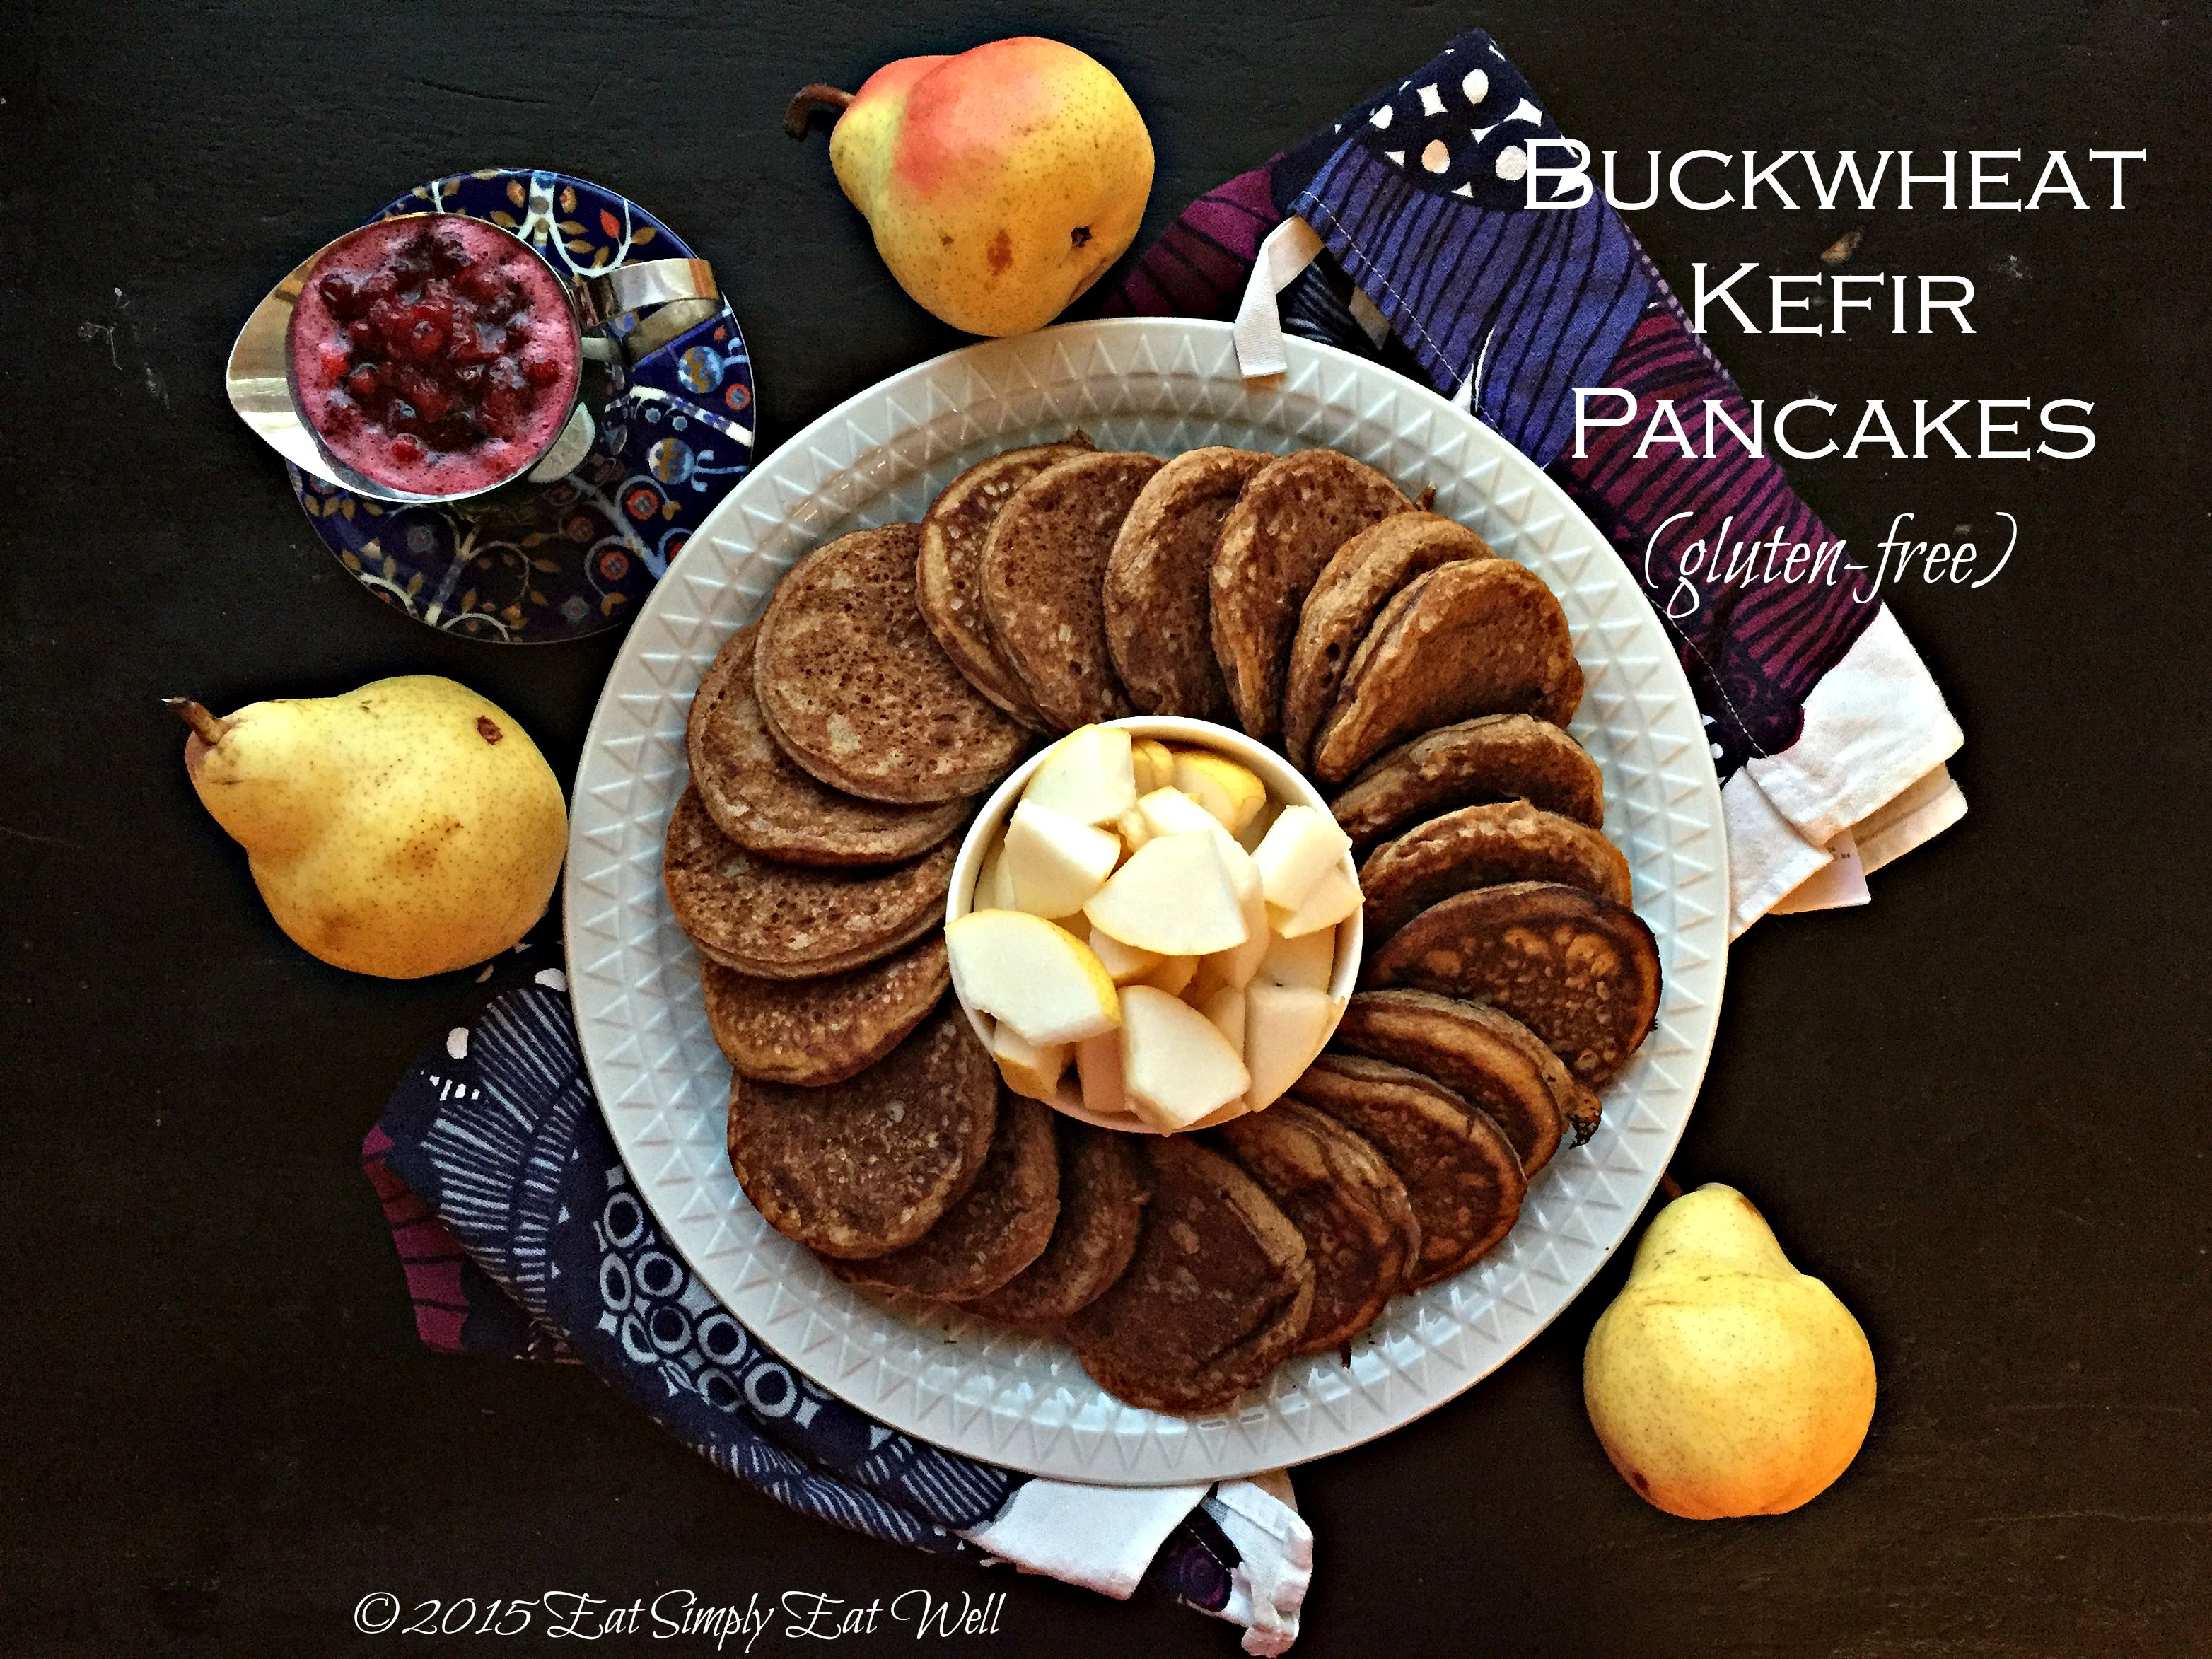 Buckwheat Kefir Pancakes with Lingonberry Maple Syrup